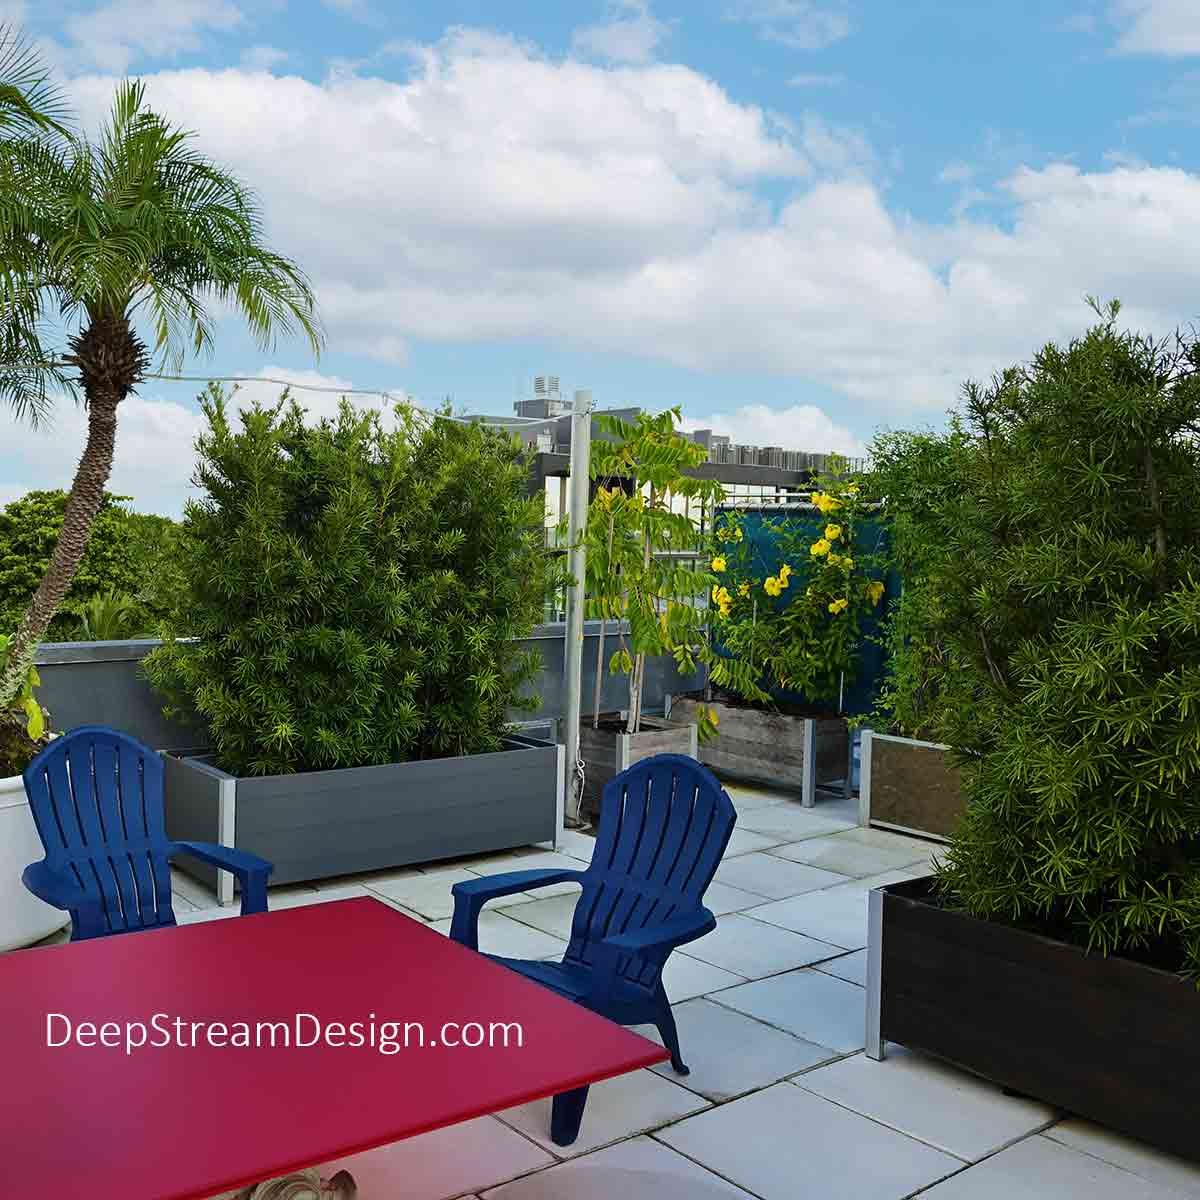 Atop a penthouse rooftop deck newly constructed buildings are blocked from view using Planter Privacy Screens growing hedges and trees in a variety of modern DeepStream Mariner and Audubon commercial planters. The hedges and trees are augmented using planters with trellises and vines with large yellow flowers, on this tropical penthouse rooftop deck dining area with a colorful red table and contrasting blue chairs.